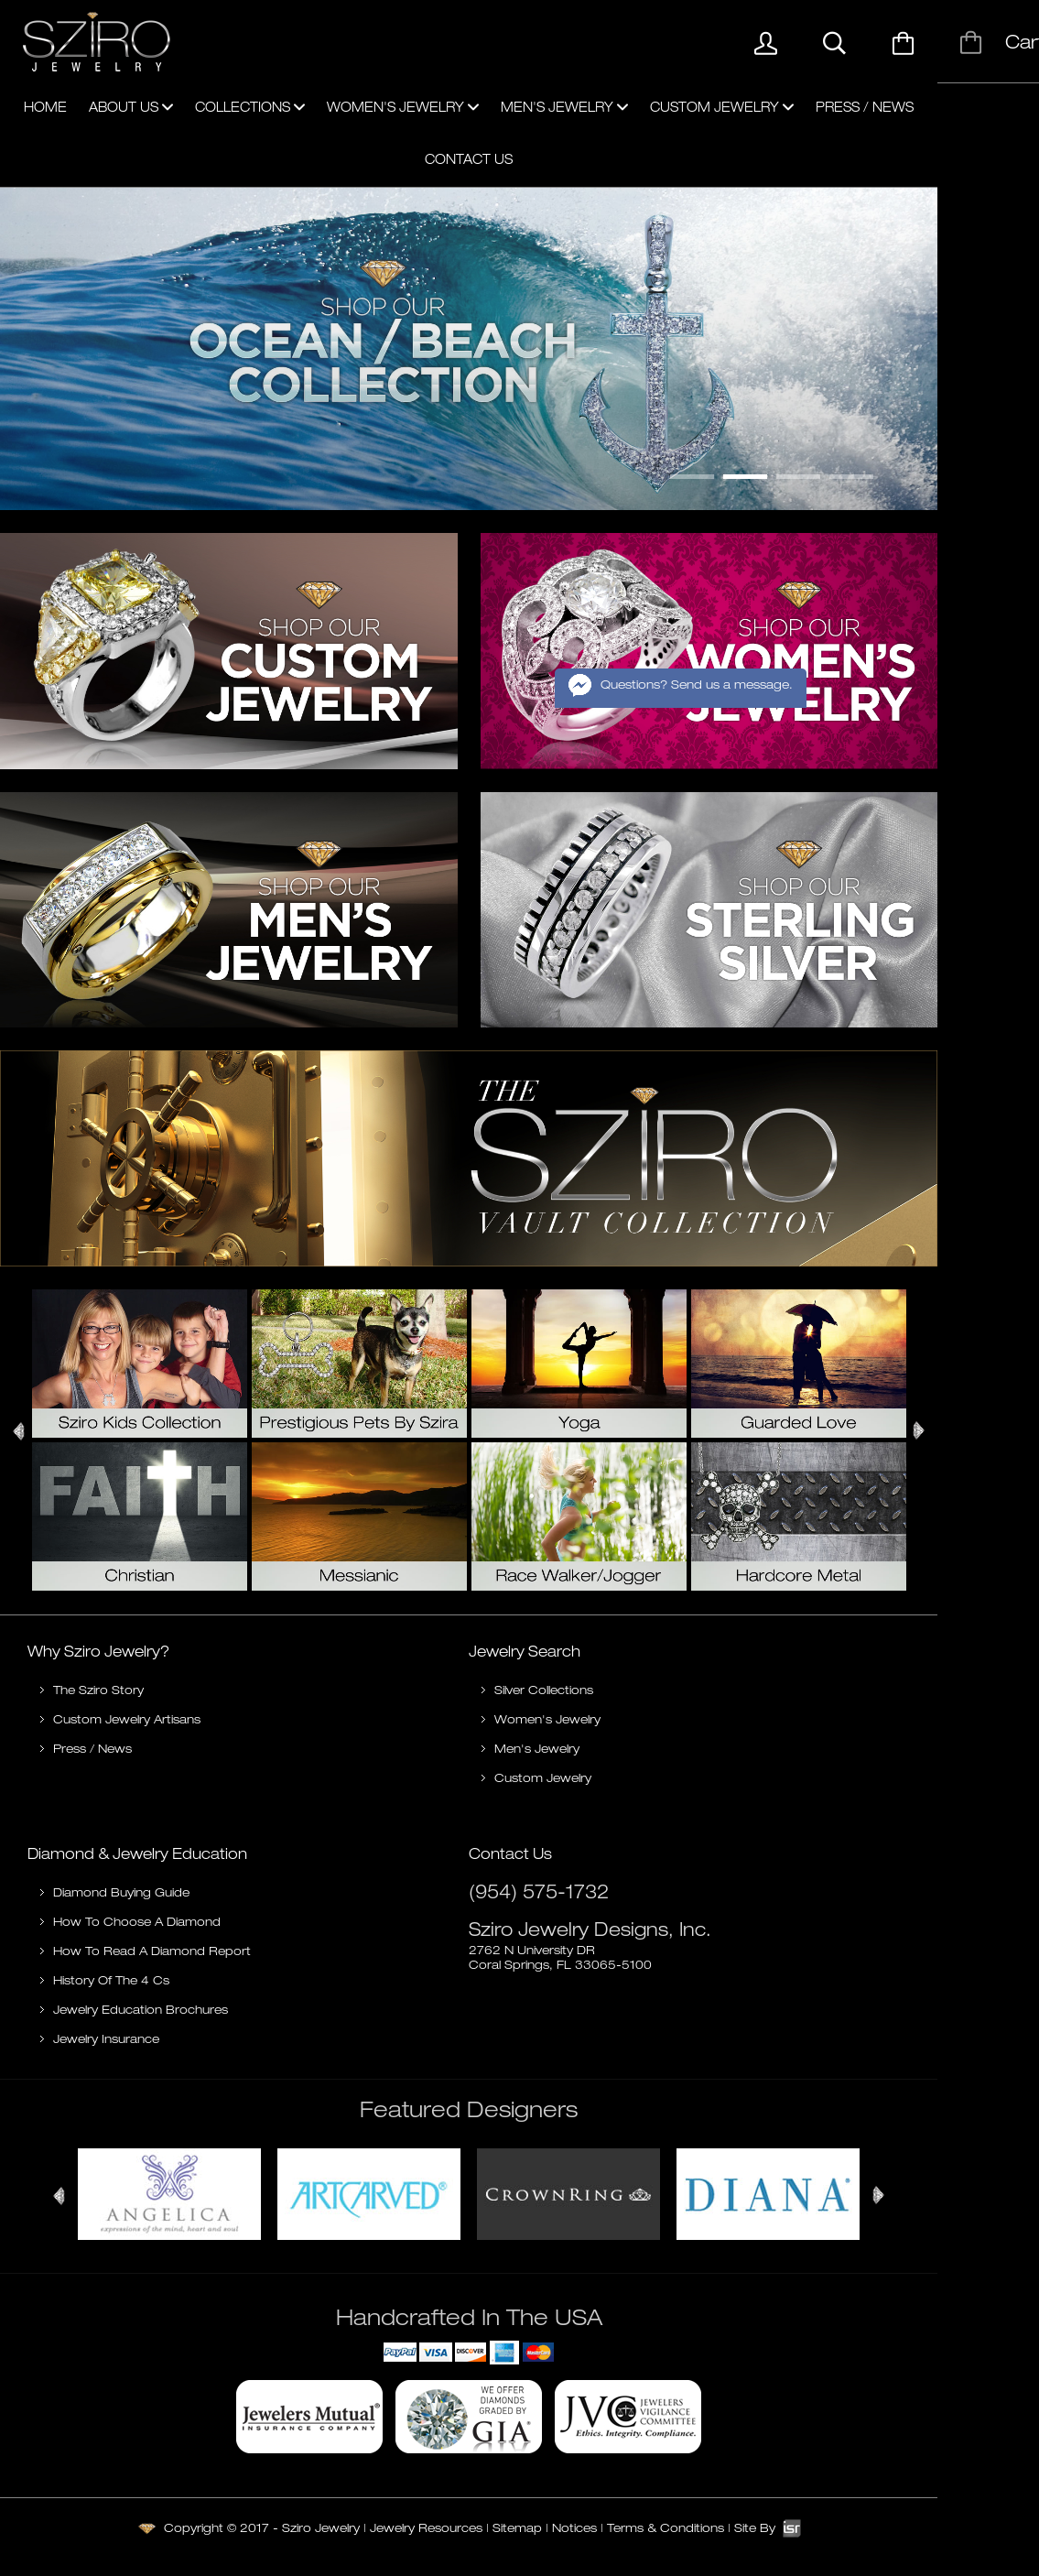 Sziro Jewelry Designs Competitors Revenue and Employees Owler